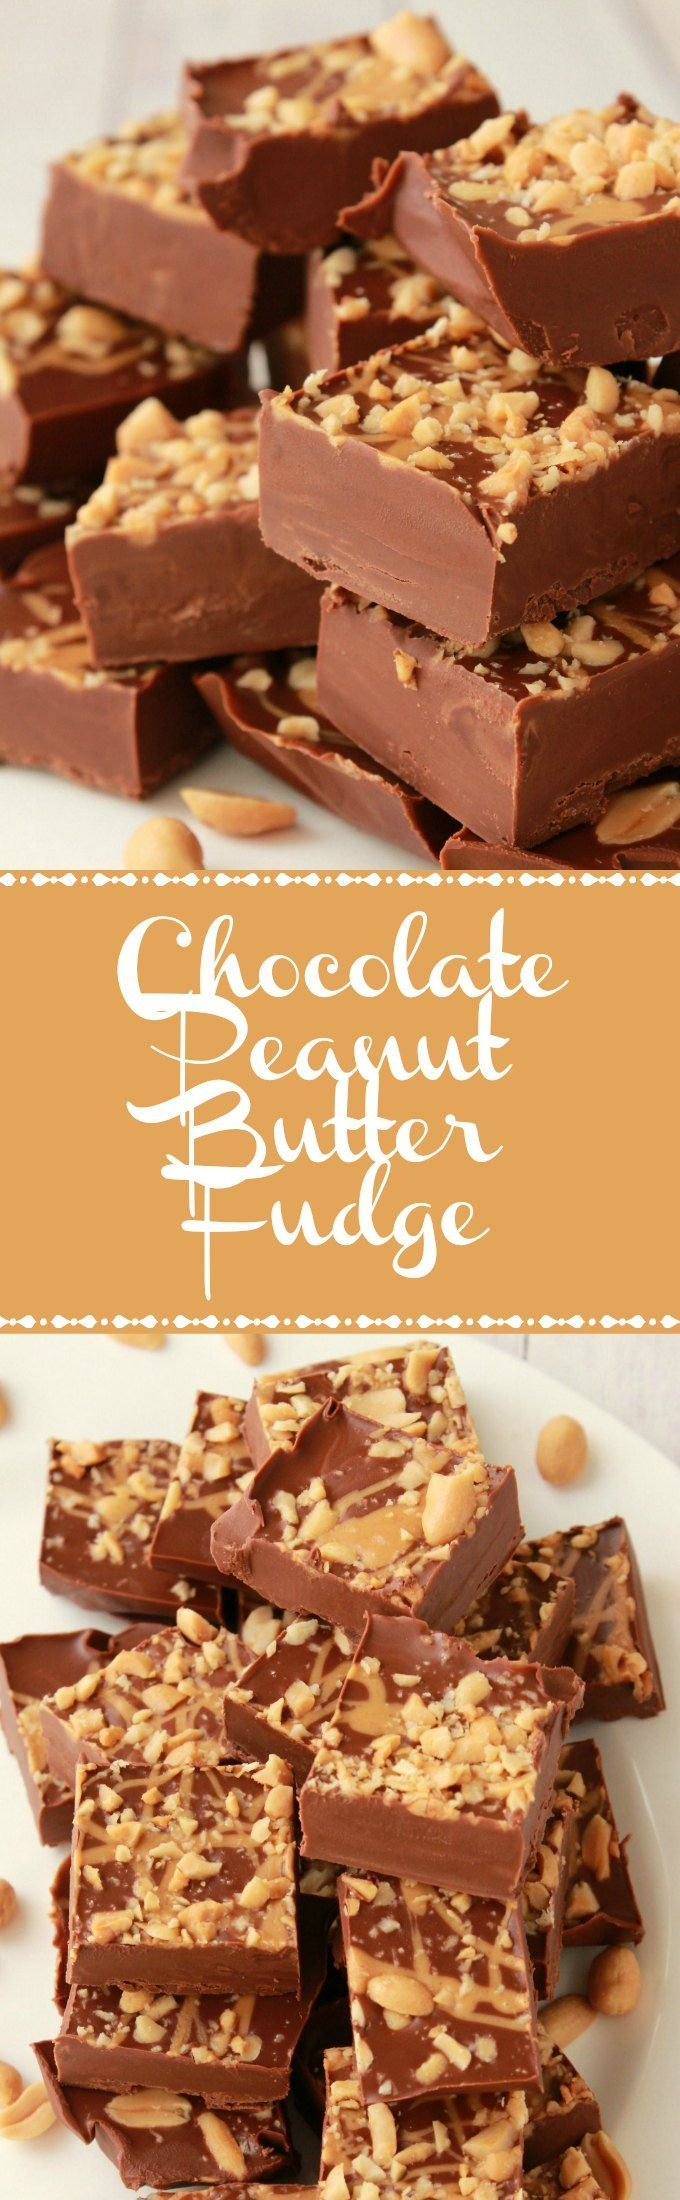 Chocolate Peanut Butter Fudge. Vegan and Gluten-Free. Vegan | Vegan Desserts | Gluten-Free | Gluten-Free Desserts | Vegan Recipes